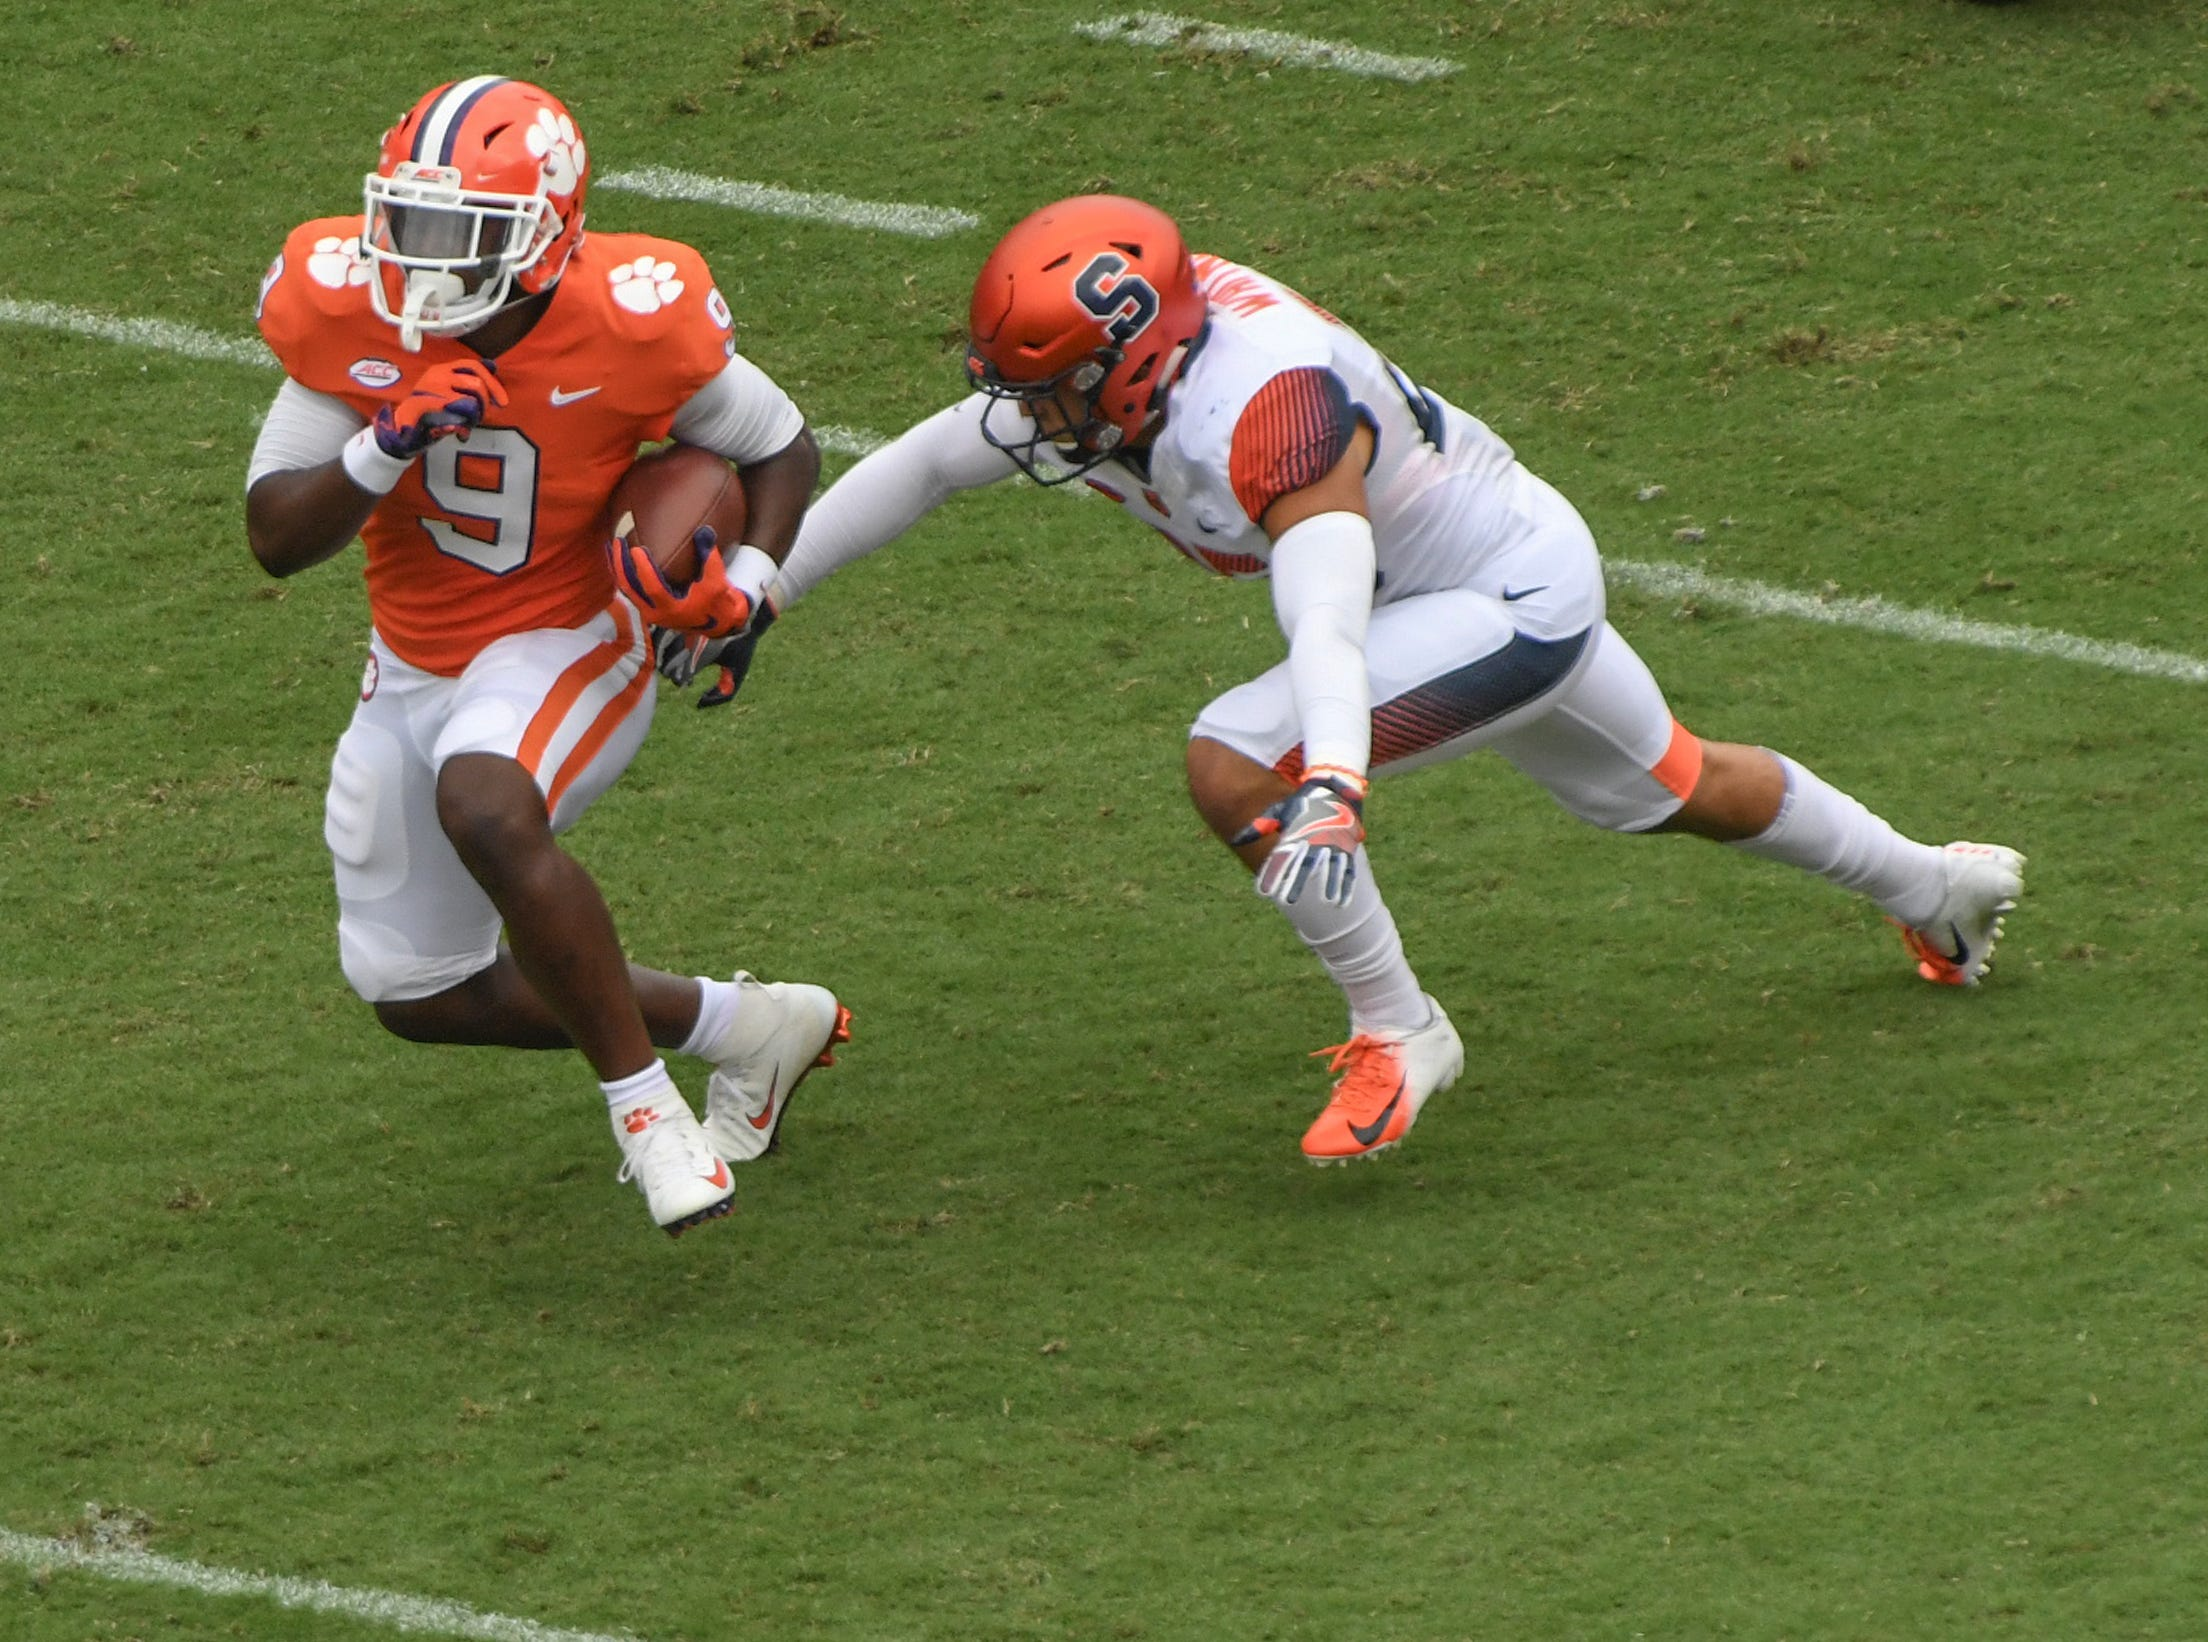 Clemson running back Travis Etienne (9) runs by a Syracuse player during the first quarter in Memorial Stadium on Saturday, September 29, 2018. Etienne credits the offensive linemen for allowing him to score three touchdowns against Syracuse.